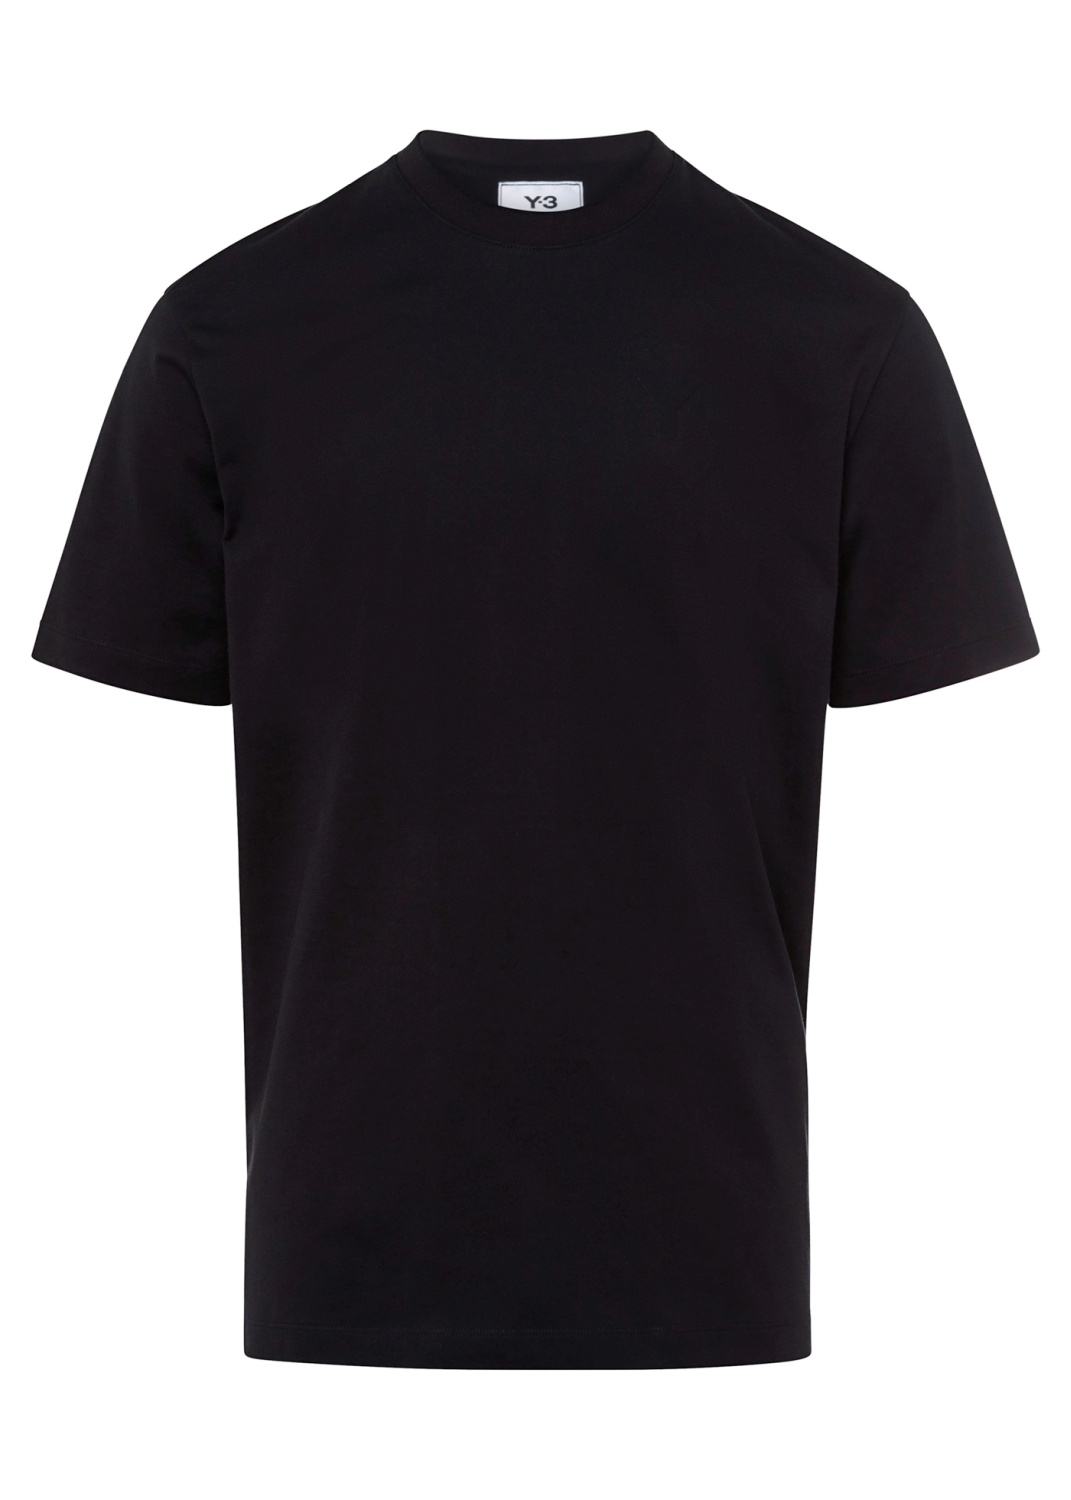 M CL C SS TEE image number 0